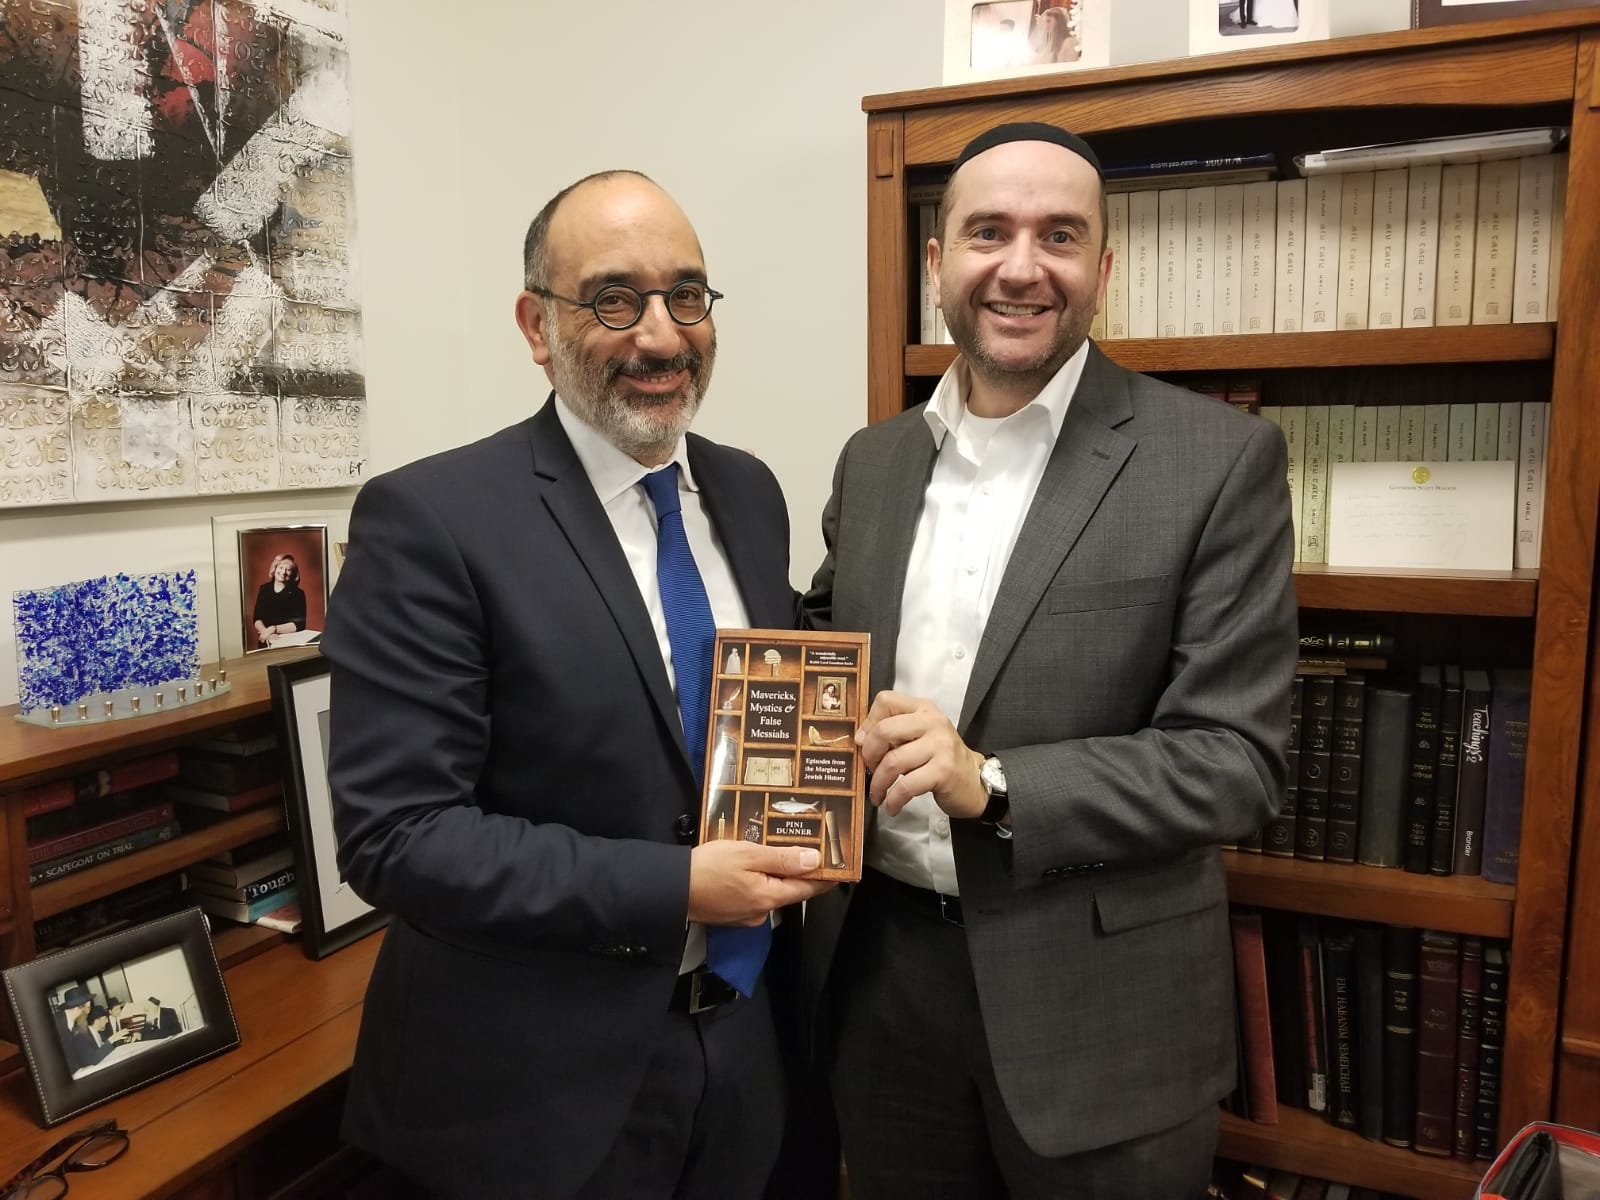 Rabbi Warren Goldstein, Chief Rabbi of South Africa, receives his copy of Rabbi Dunner's book Mavericks, Mystics & False Messiahs at Beverly Hills Synagogue, December 4, 2018